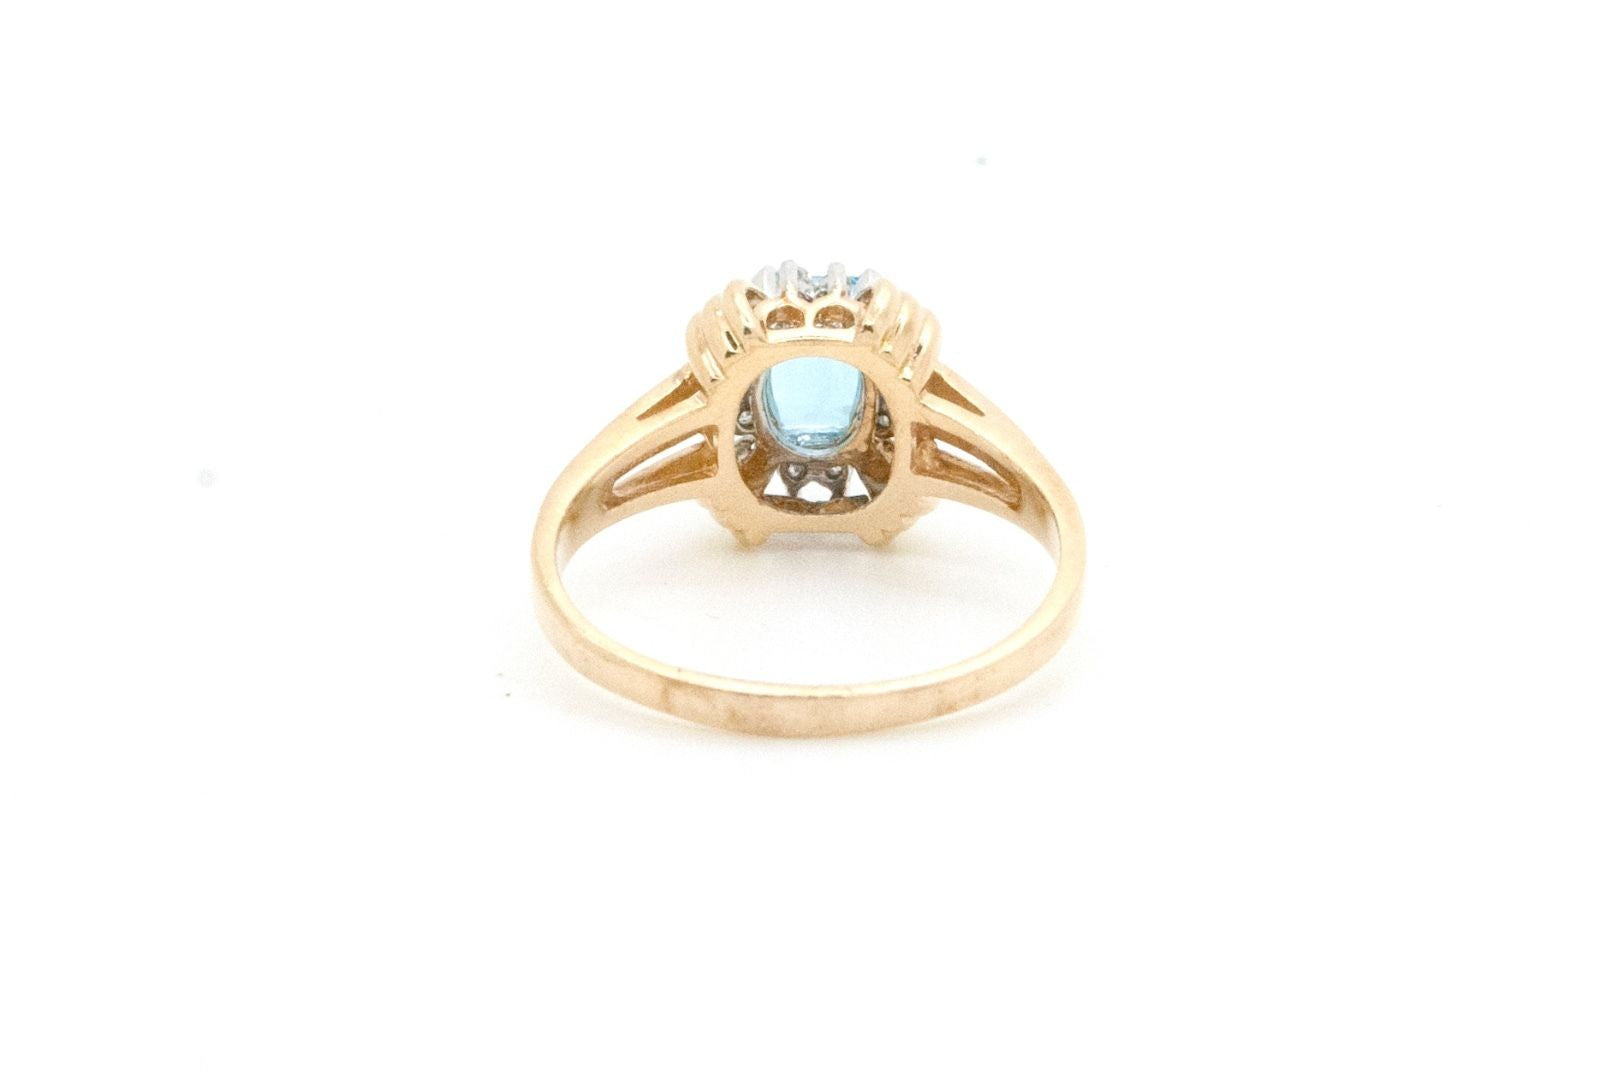 14k Yellow Gold Blue Topaz and Diamond Ring - 1.35 ct. total - Size 9.75